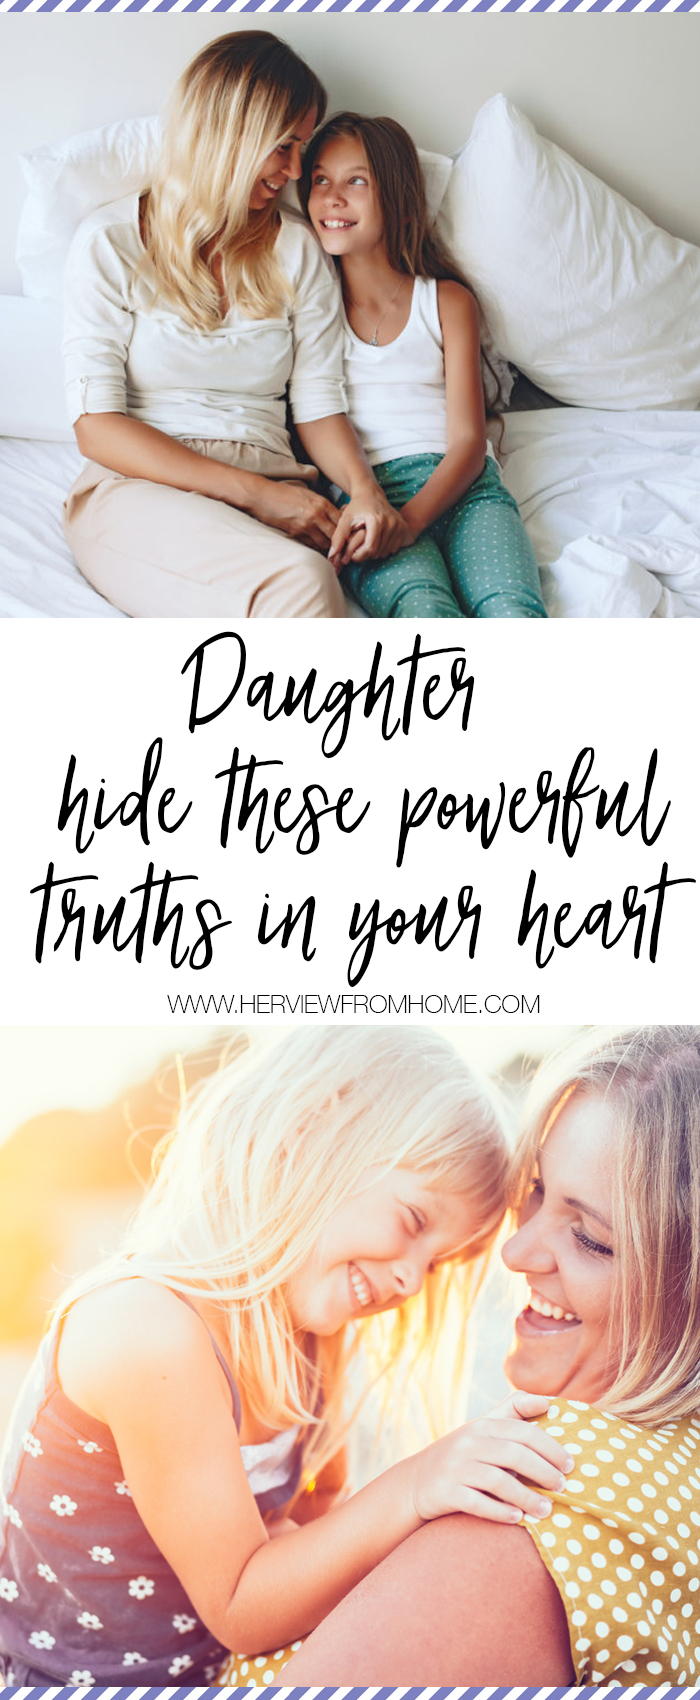 Daughter, don't numb. Deal. Do the things you're afraid of, feel the feelings that scare you and then you won't fear them anymore.